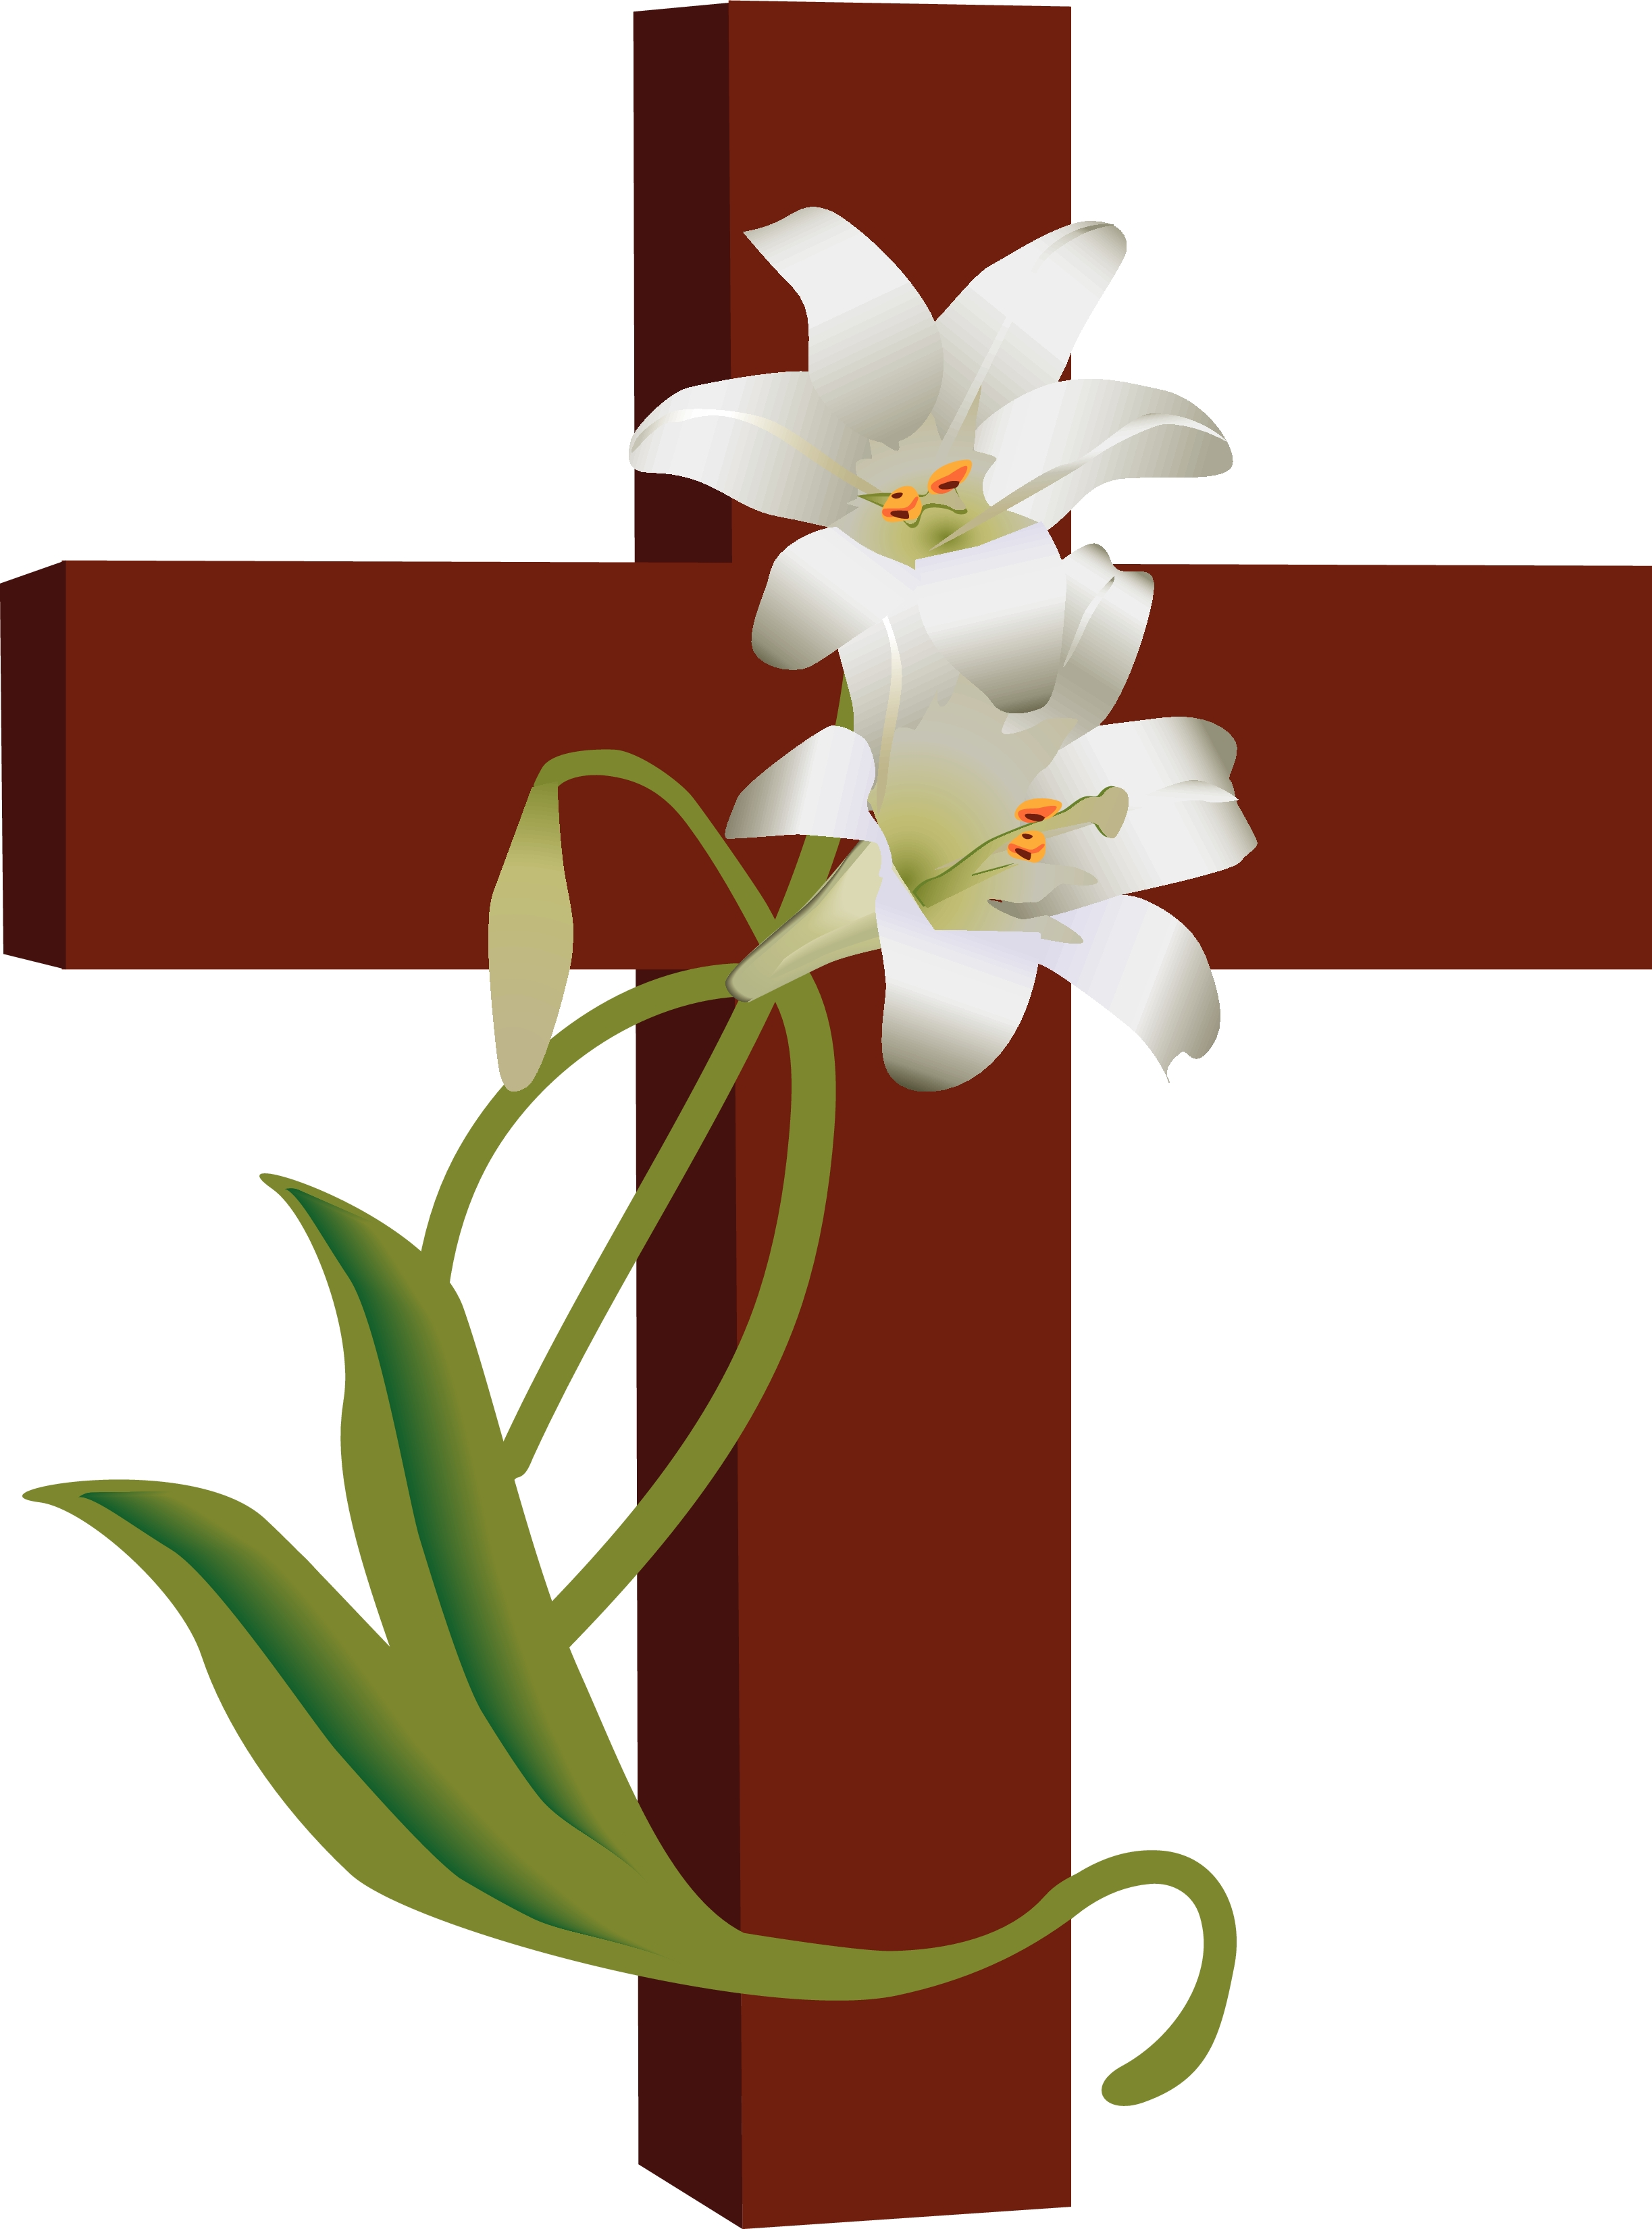 Cross with roses photo clipart photo - ClipartFest image royalty free